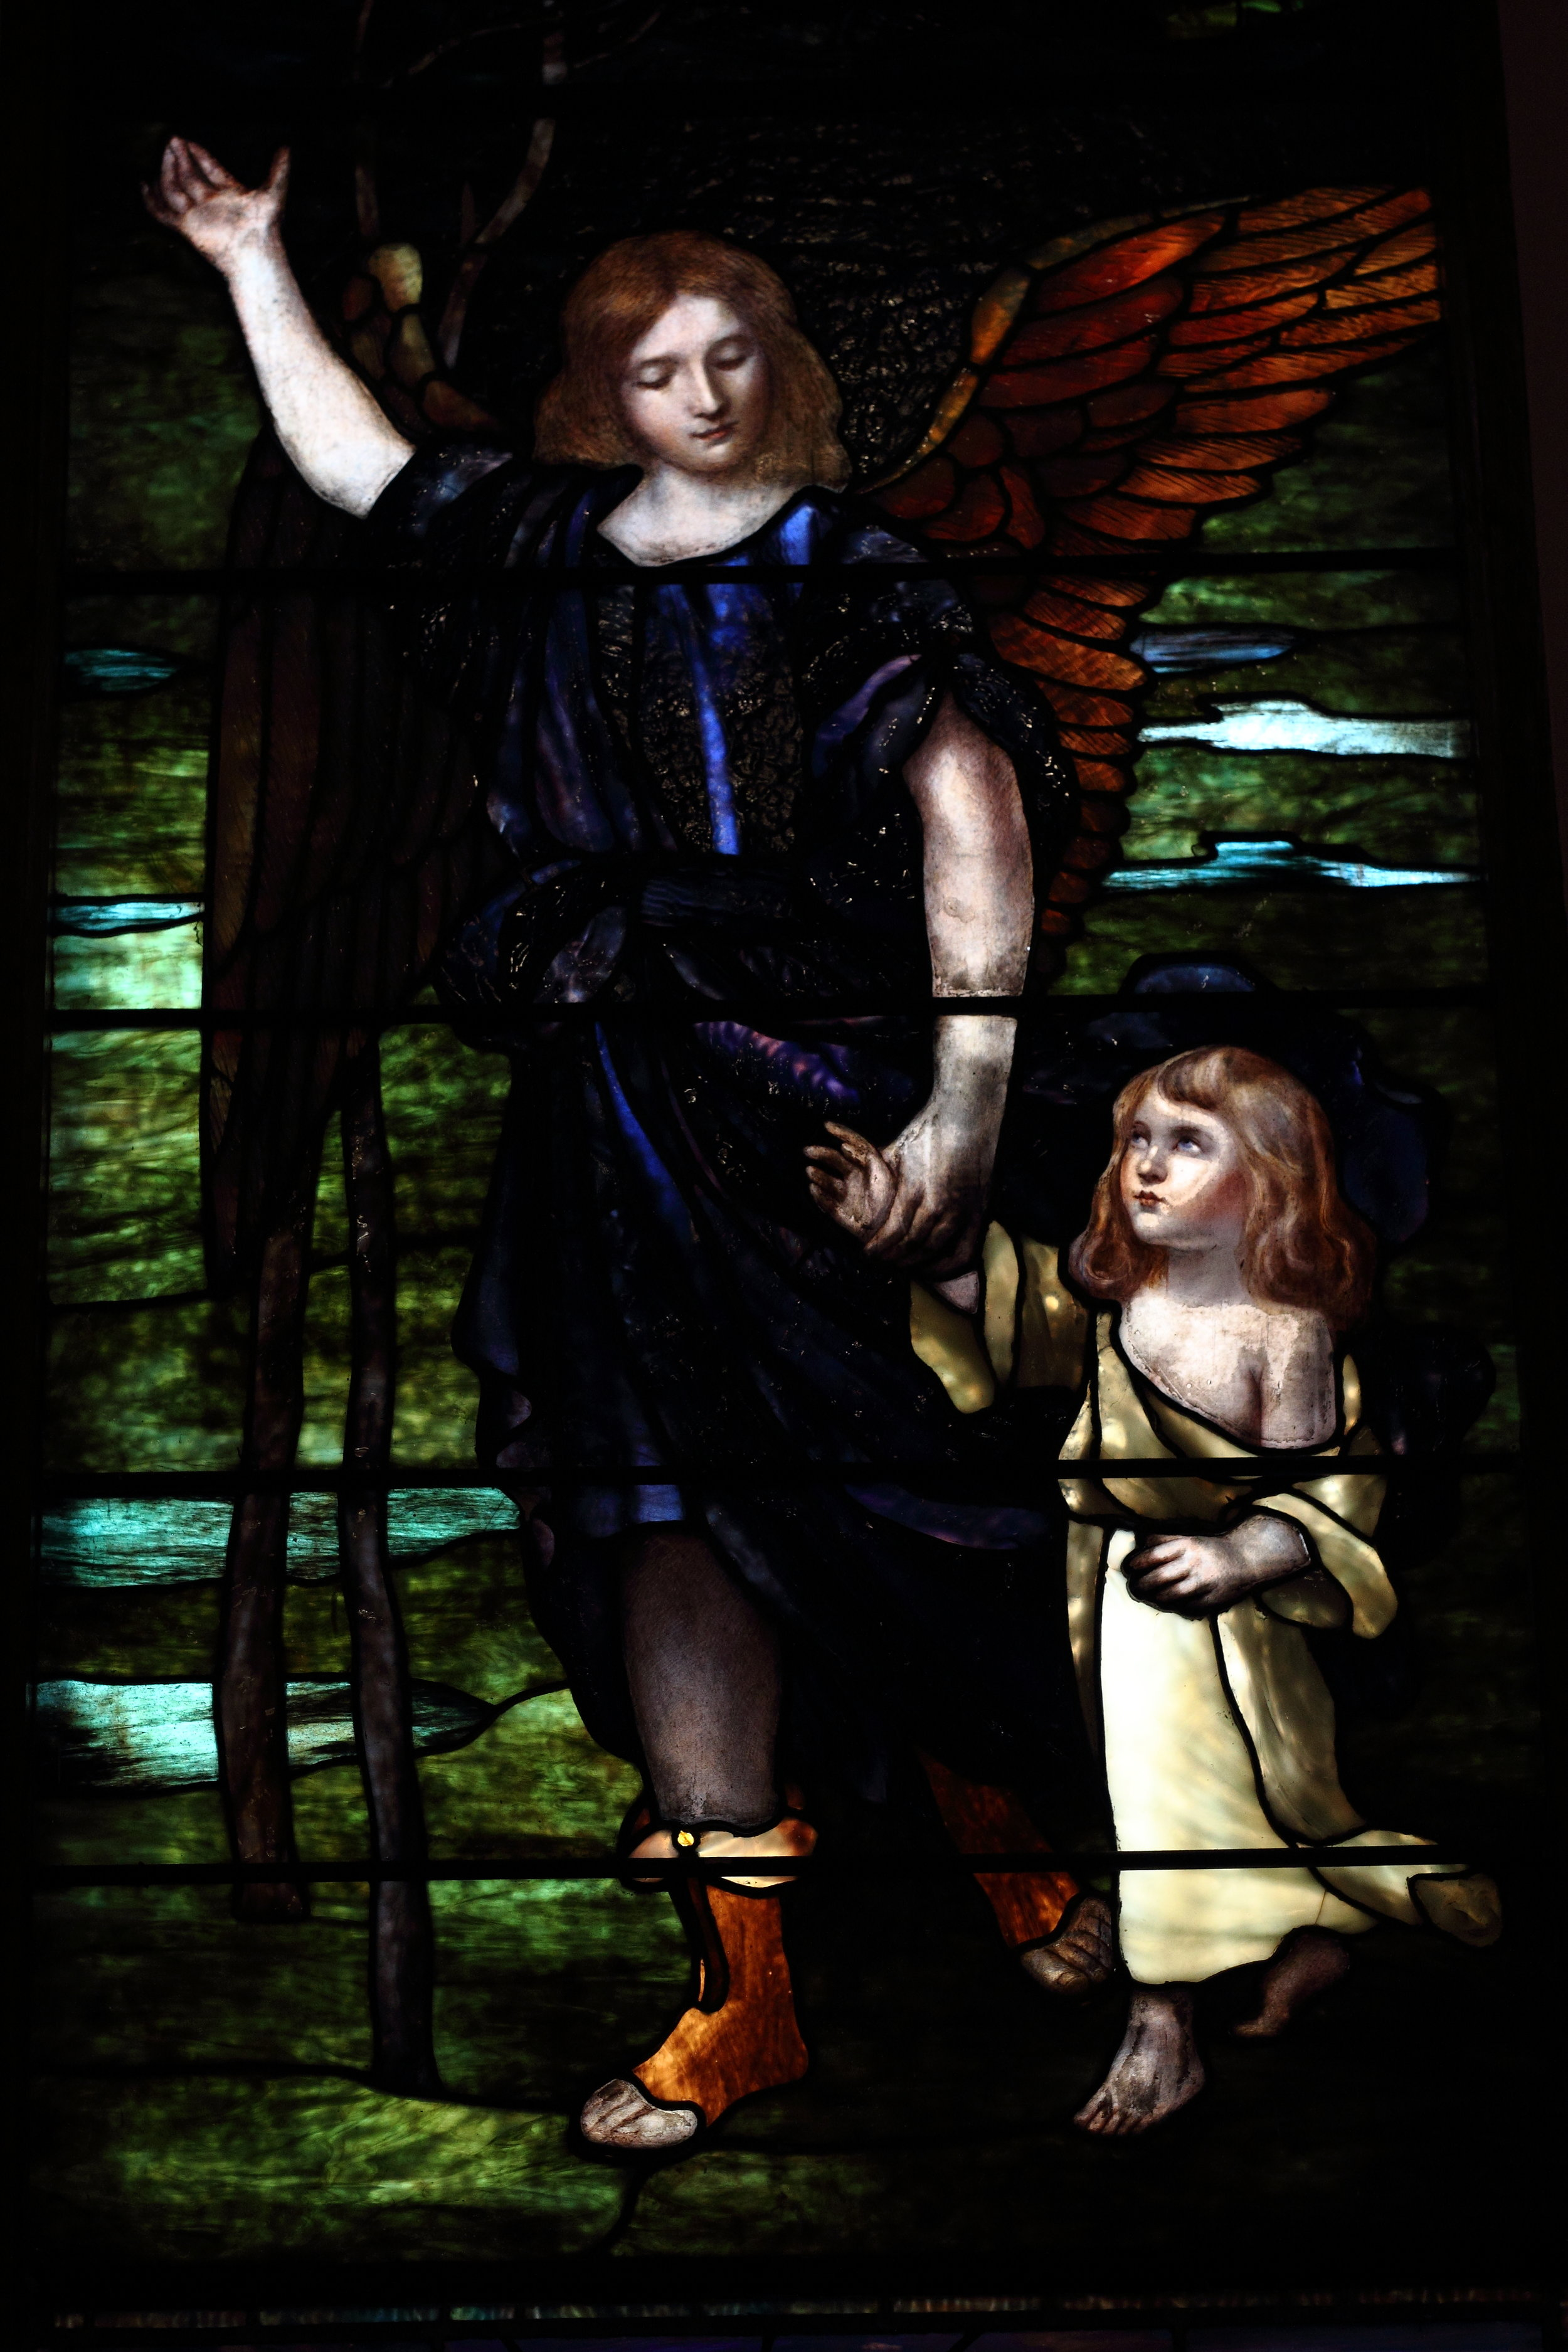 One of Emmanuel's stained-glass windows depicts a child being guided by an angel. Photo by Ashton Pilkerton.